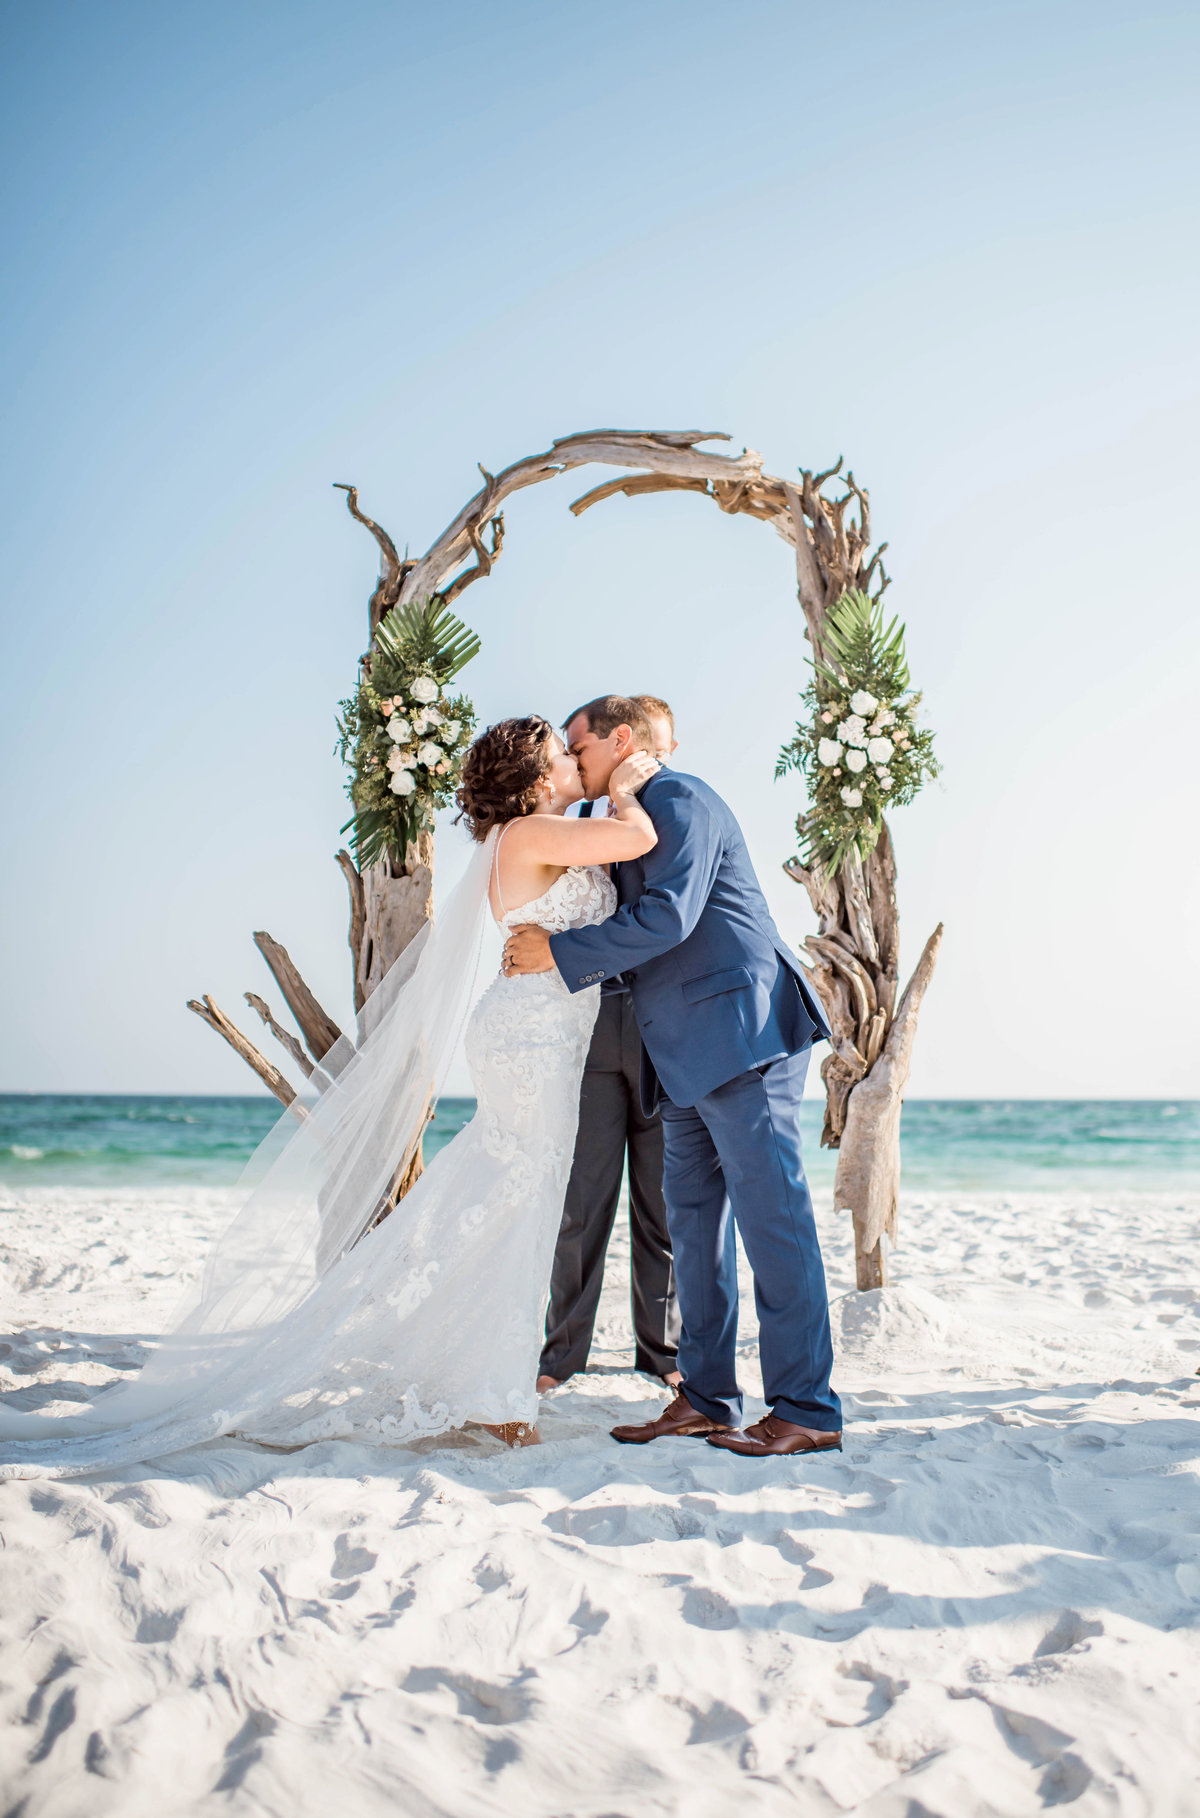 The Island, FL-wedding Photography-16